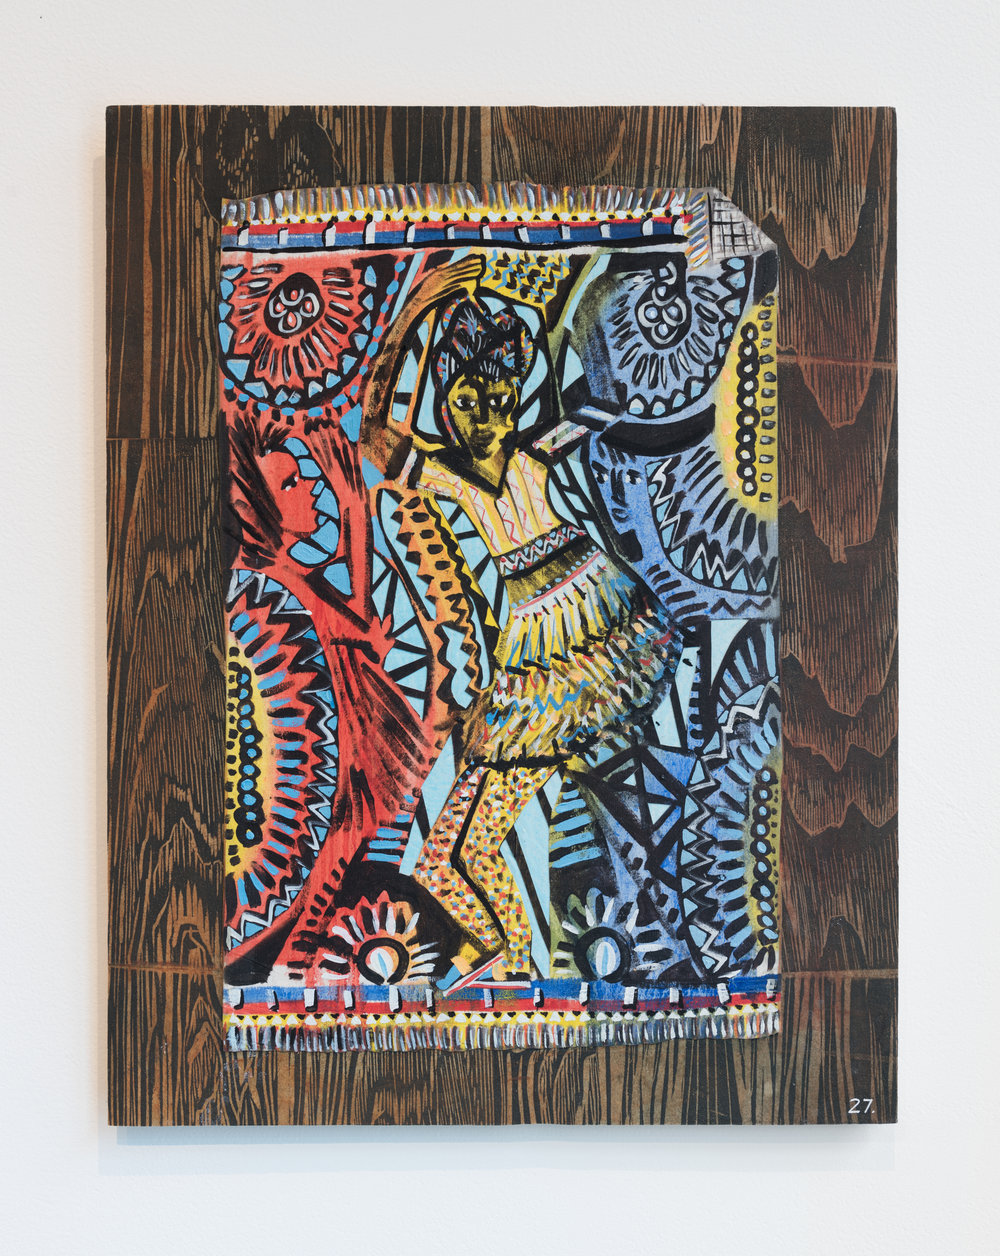 Cut a Rug 27 , 2018  Woodblock print, acrylic, and oil on muslin laminated to board  20 x 14 in.